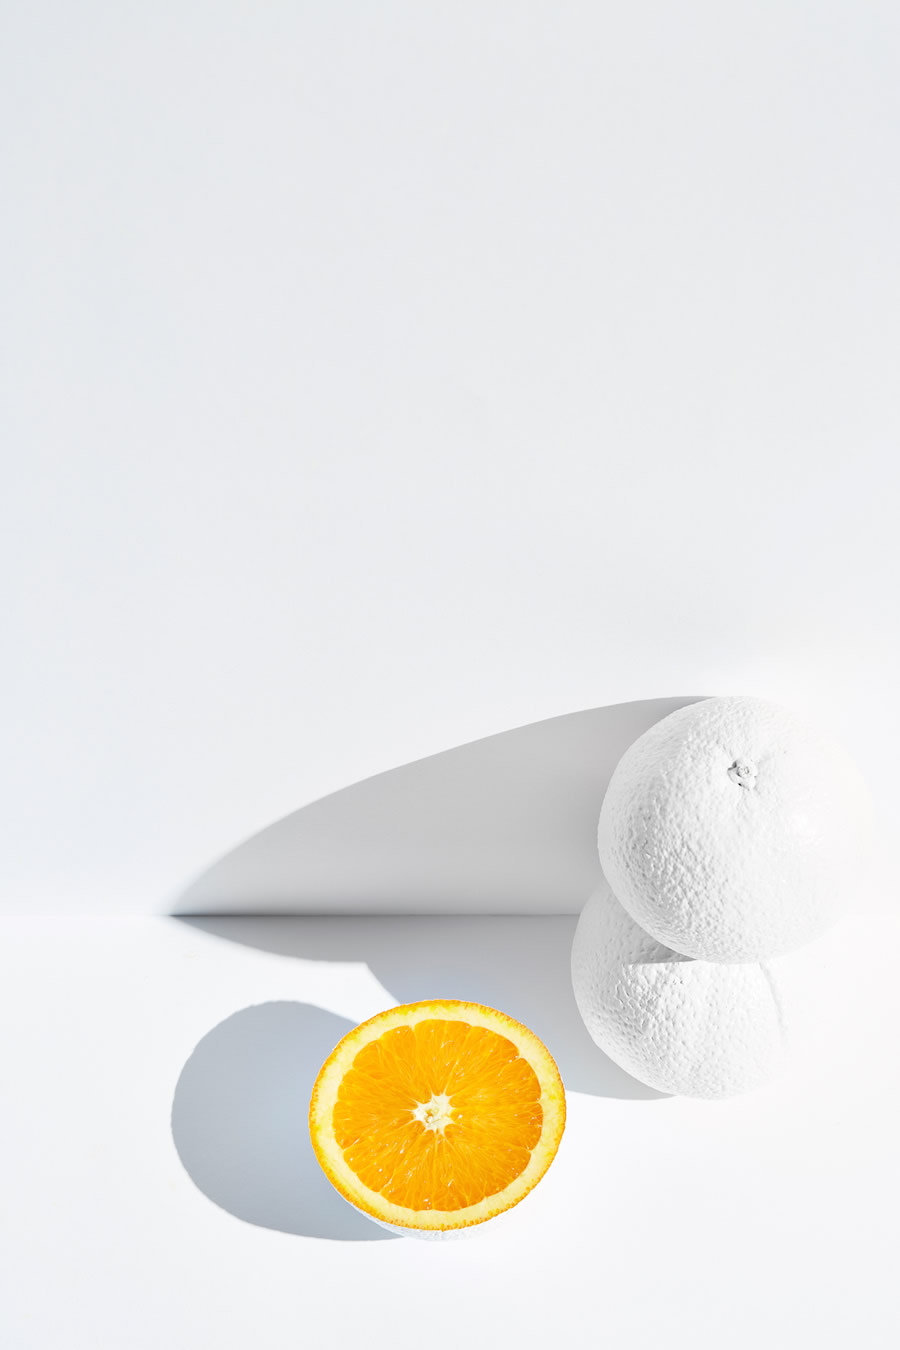 White: Creative & Conceptual Food Photography By Benito Martin And Gemma Lush